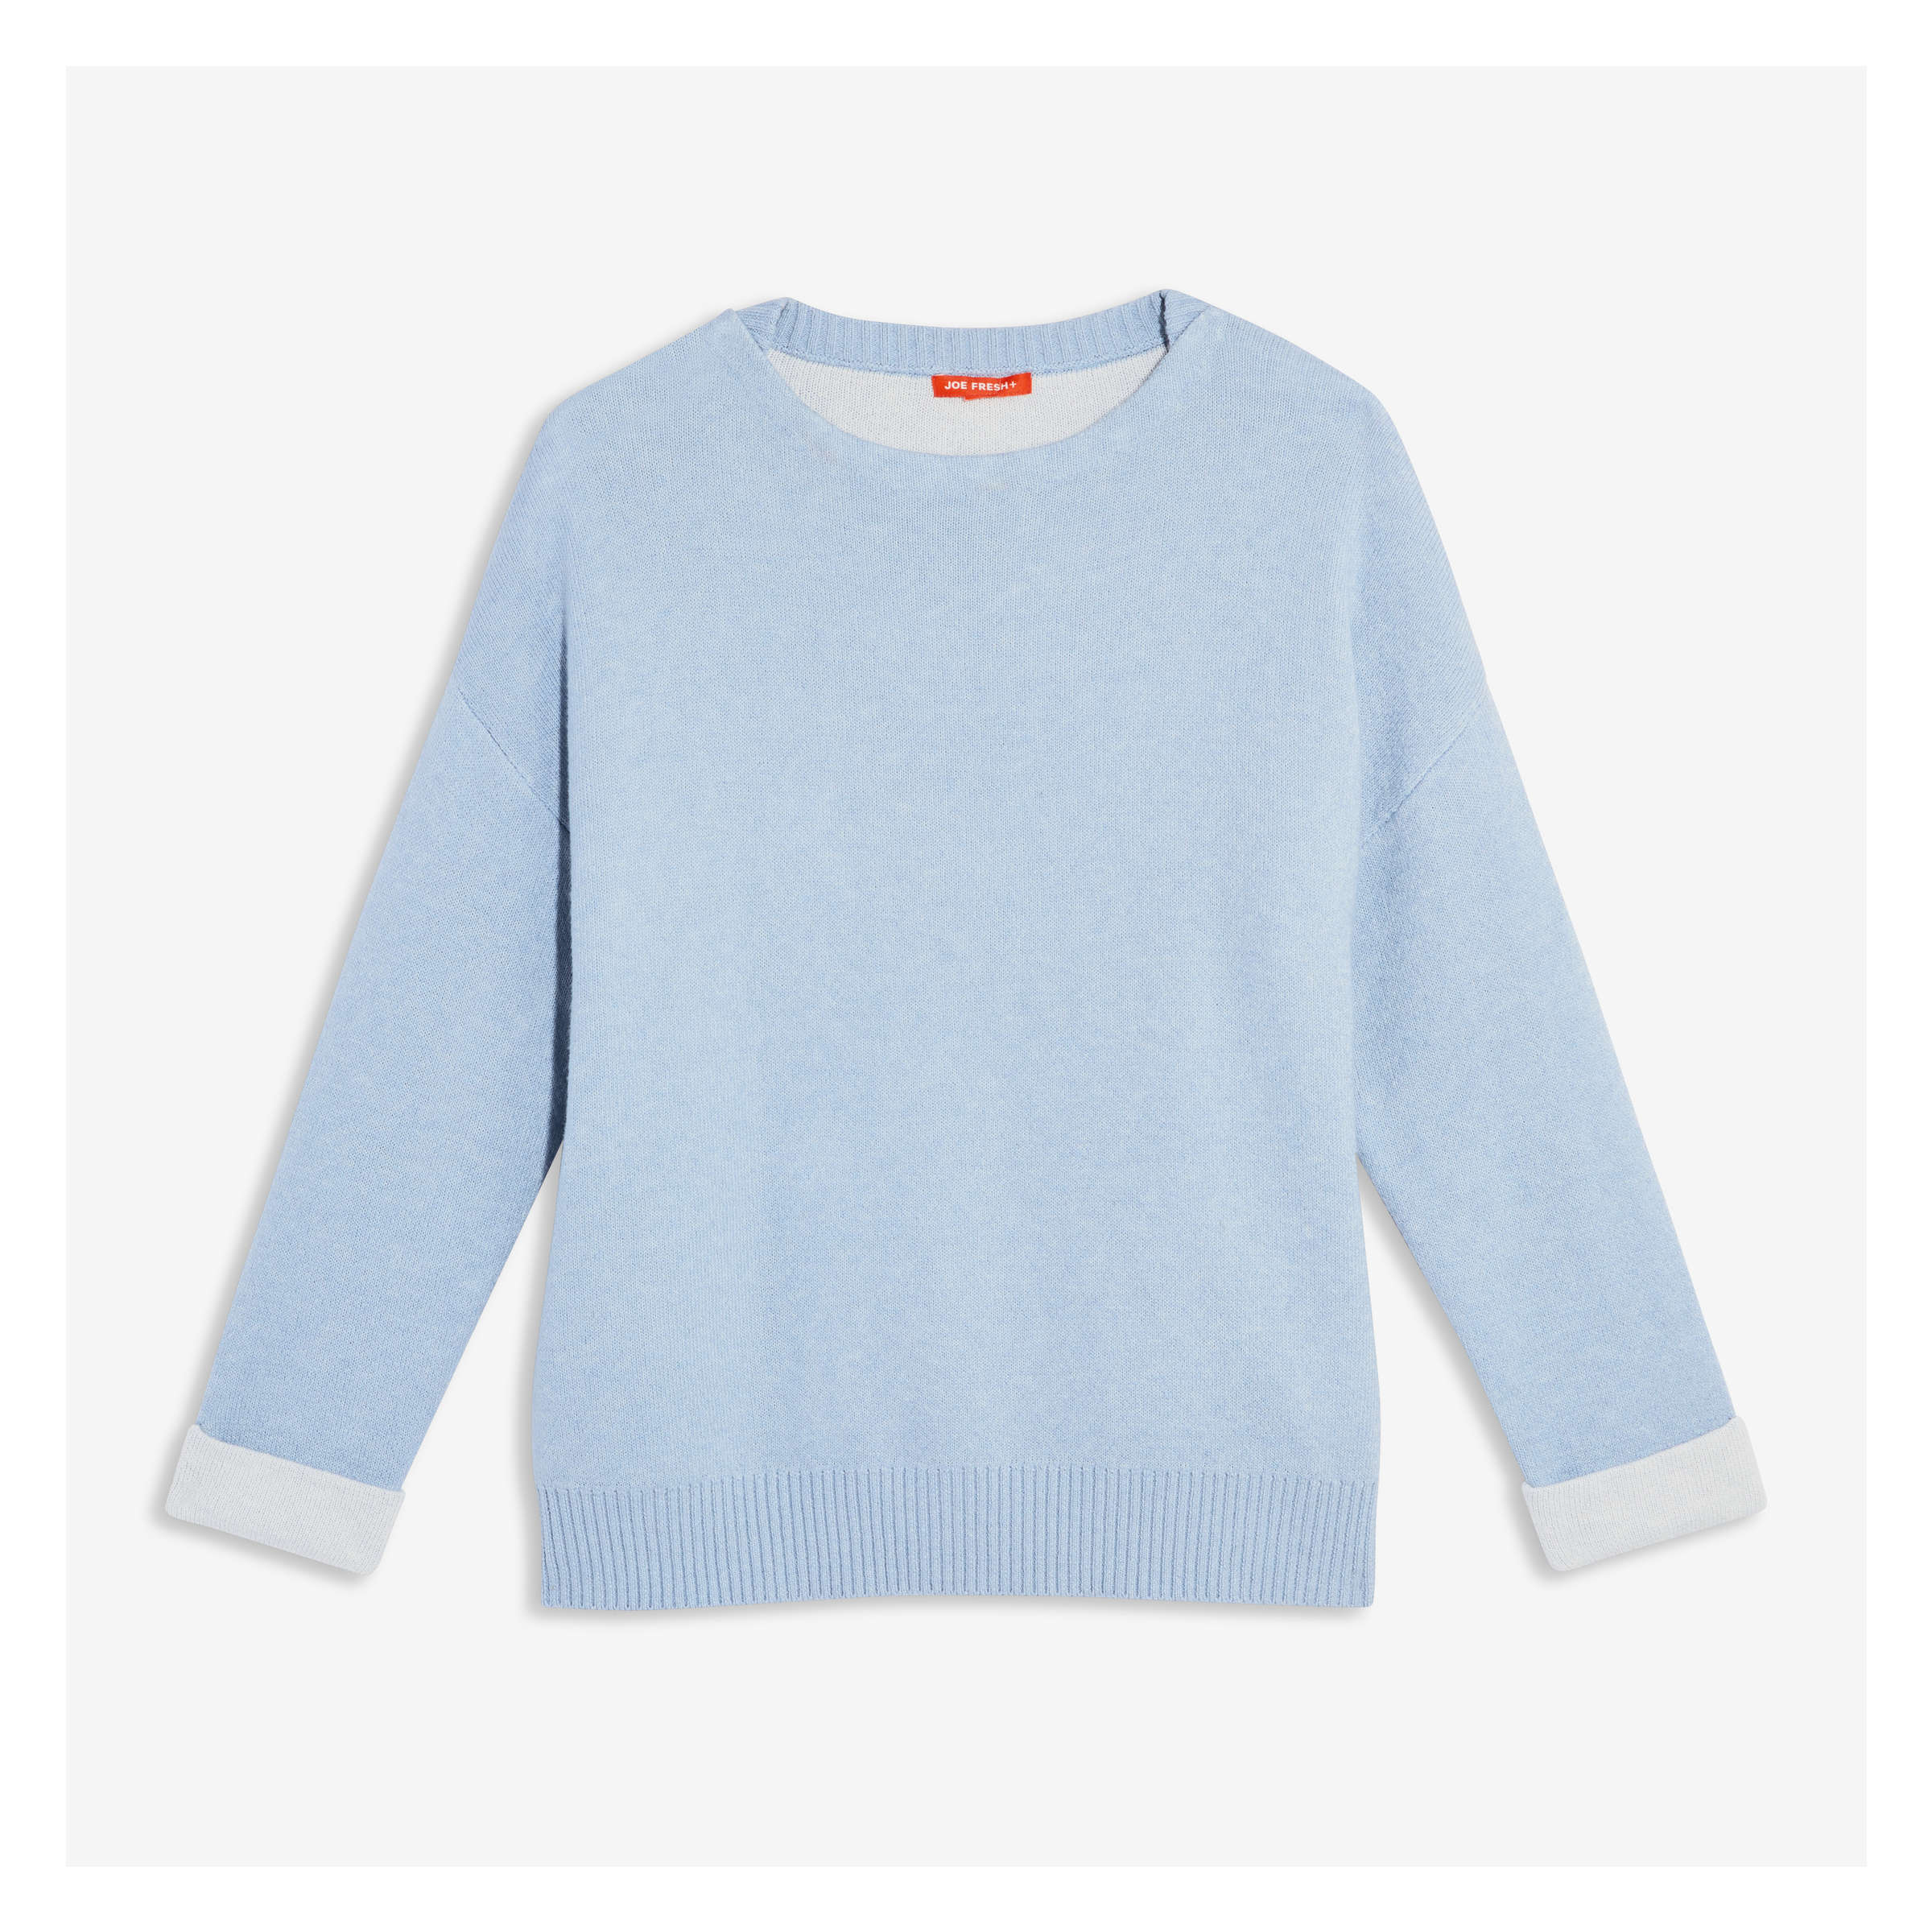 Joe Fresh+ - Super Soft Sweater ($29 CAD)